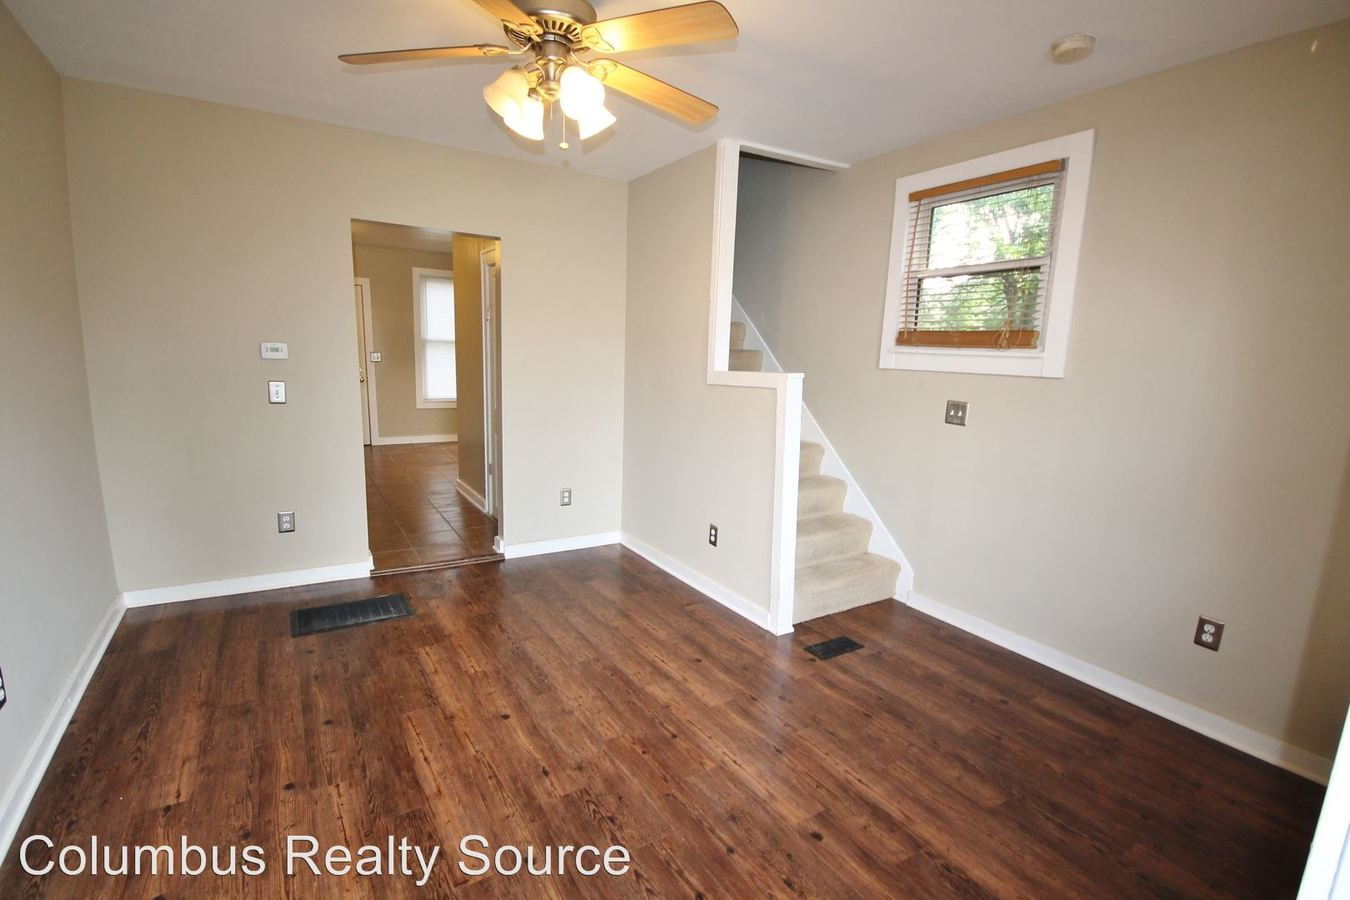 2 Bedrooms 1 Bathroom Apartment for rent at 2456-2458 N Pearl St in Columbus, OH